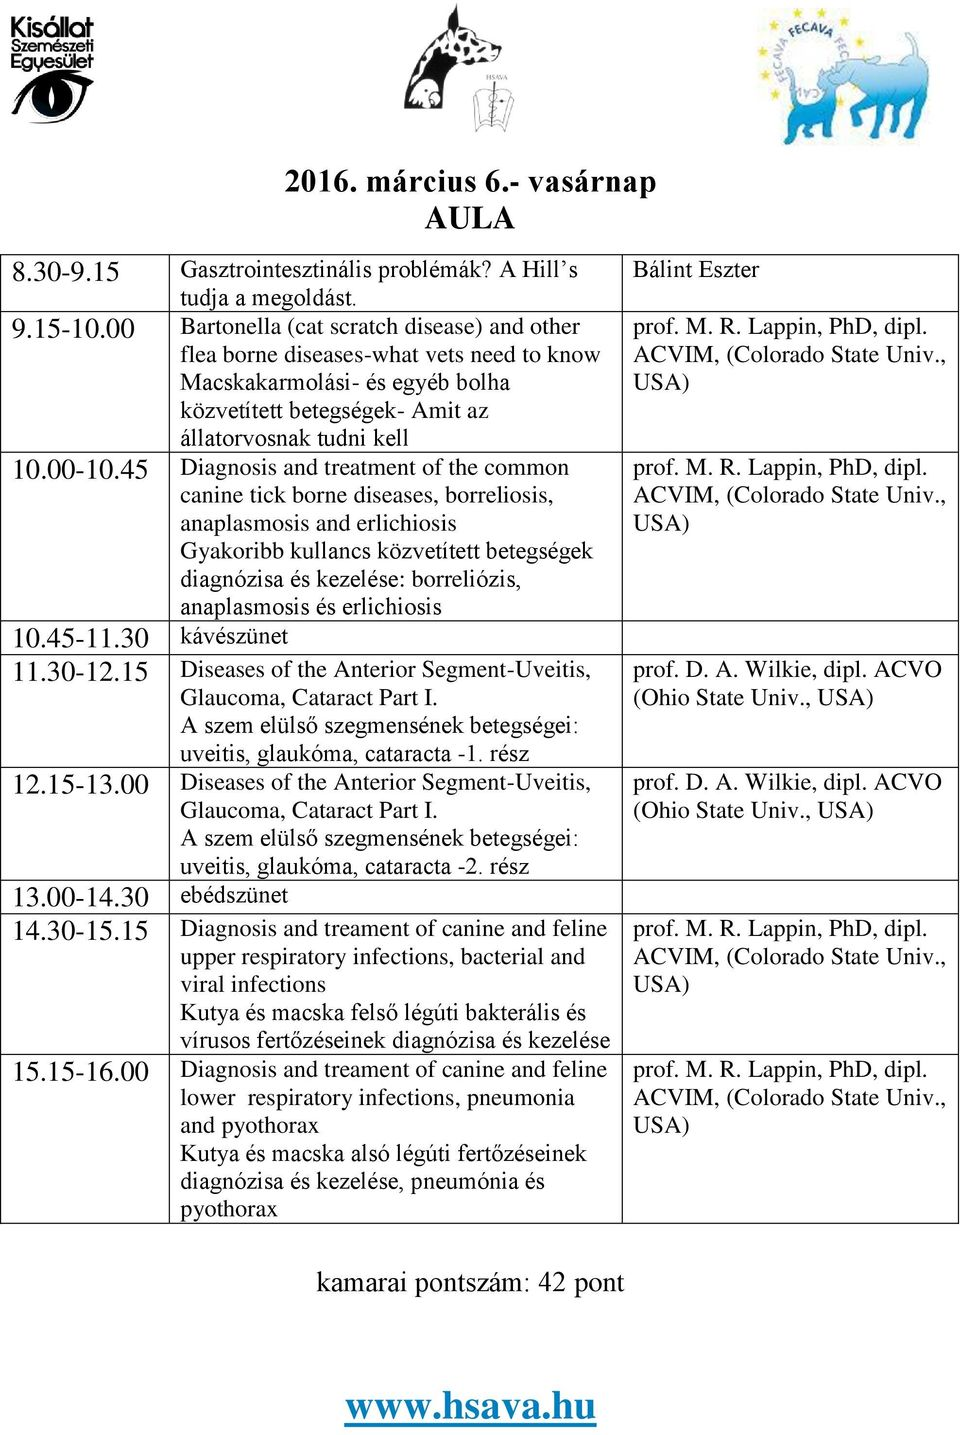 45 Diagnosis and treatment of the common canine tick borne diseases, borreliosis, anaplasmosis and erlichiosis Gyakoribb kullancs közvetített betegségek diagnózisa és kezelése: borreliózis,